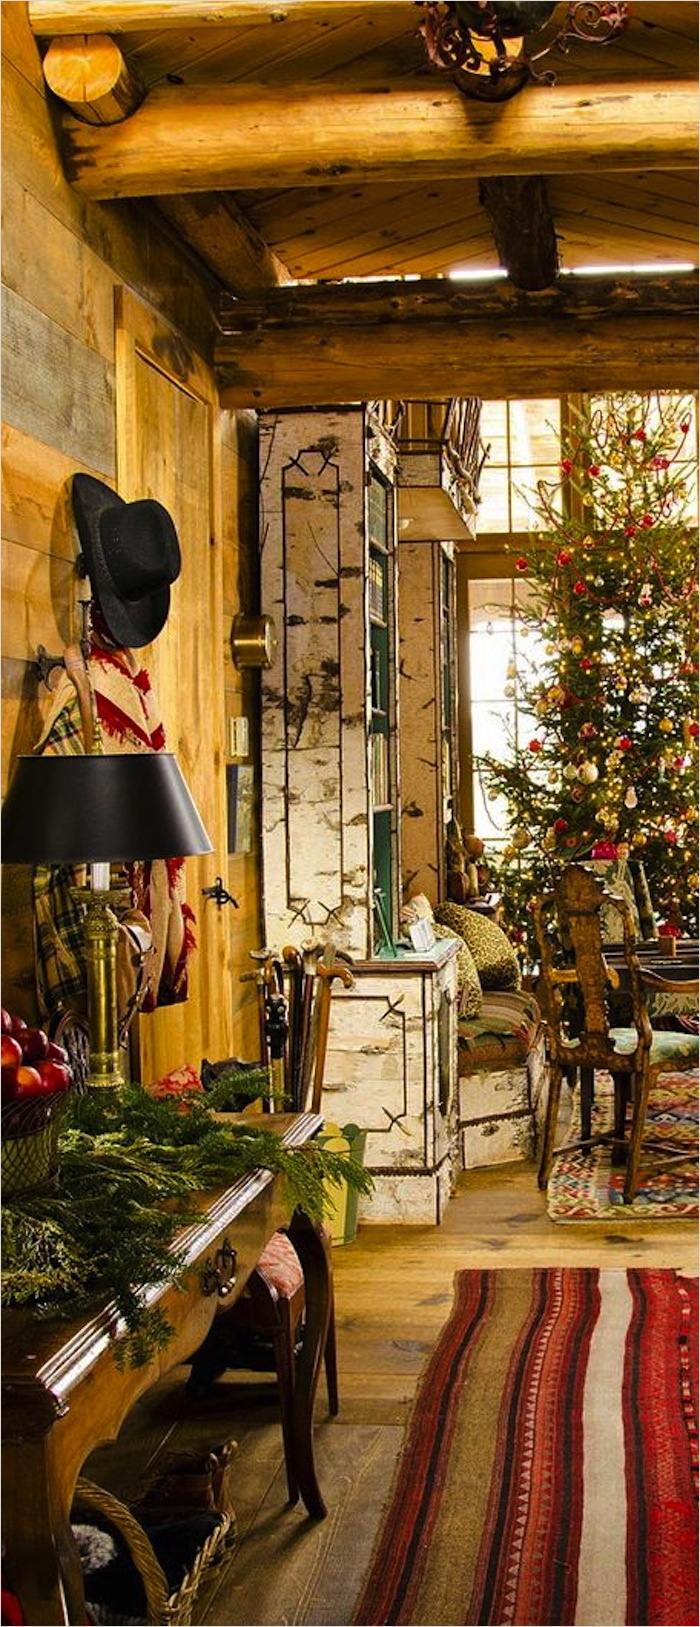 41 Amazing Country Christmas Decorating Ideas 13 10 Country Christmas Decorating Ideas 4